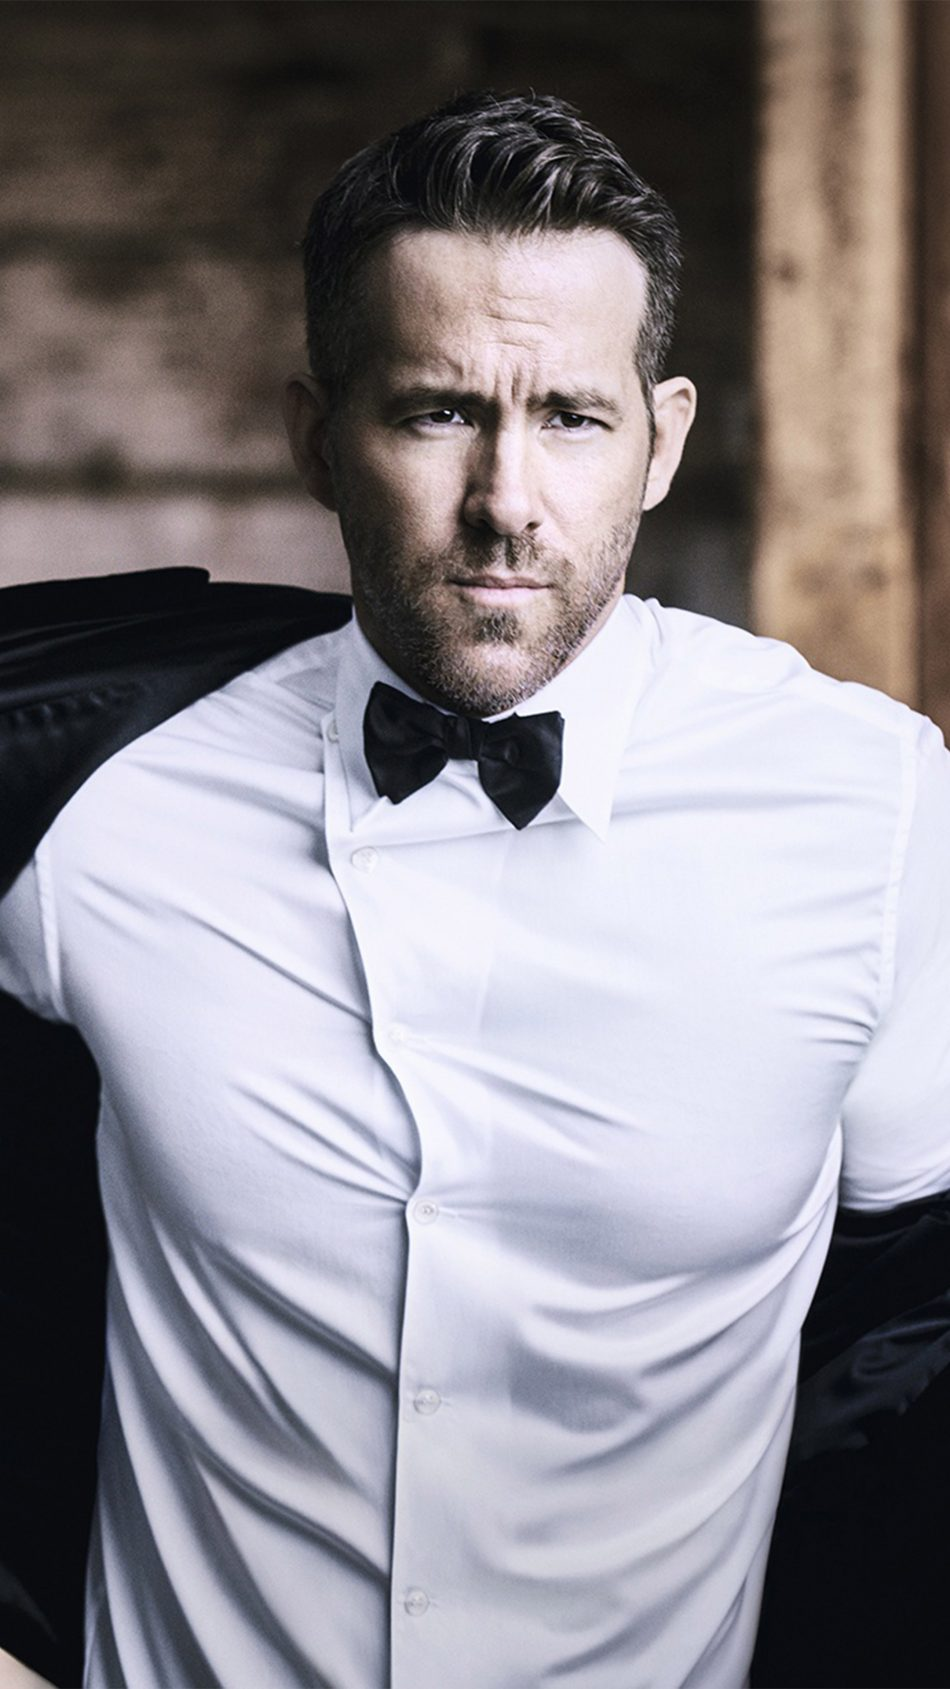 Ryan Reynolds Canadian Actor 4K Ultra HD Mobile Wallpaper